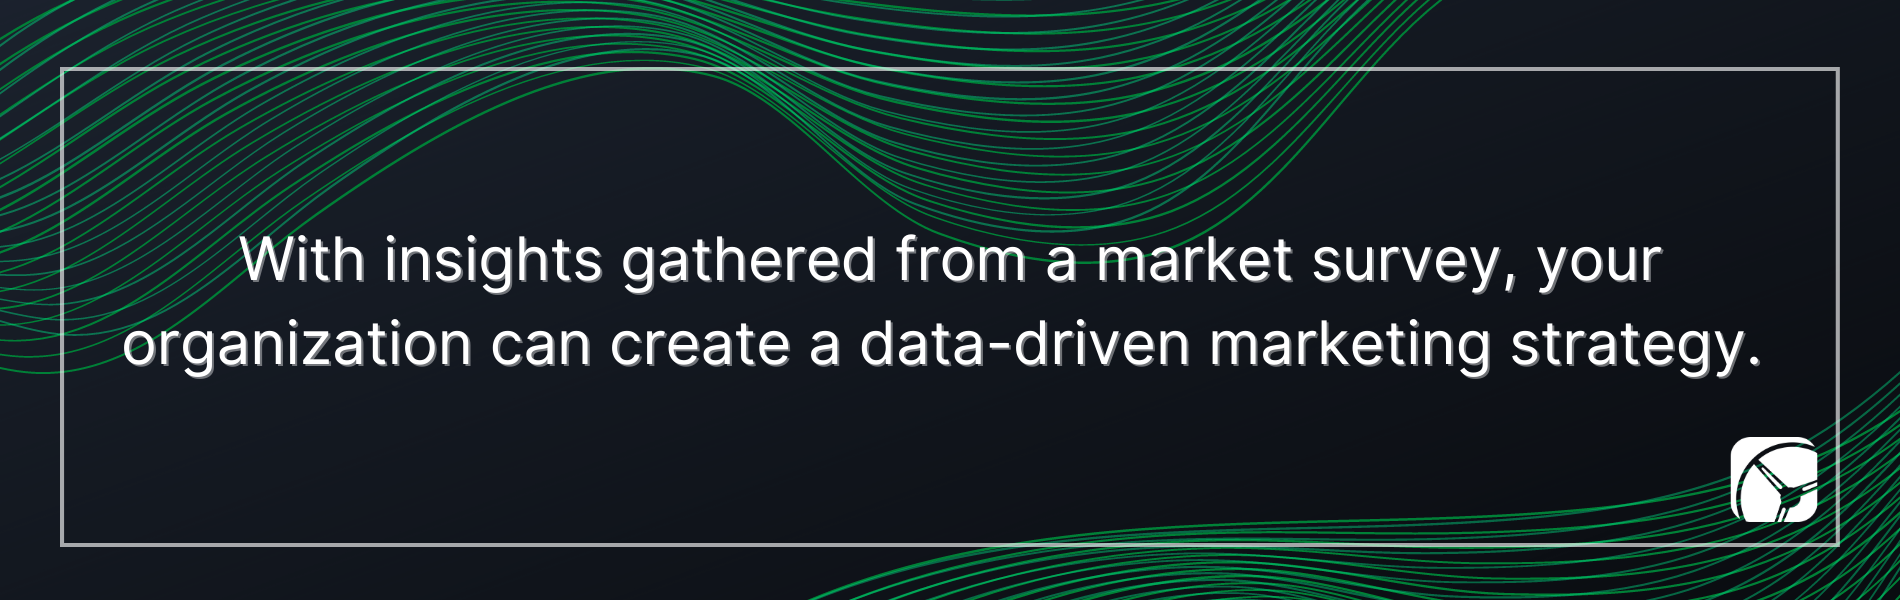 With insights gathered from a market survey, your organization can create a data-driven marketing strategy.